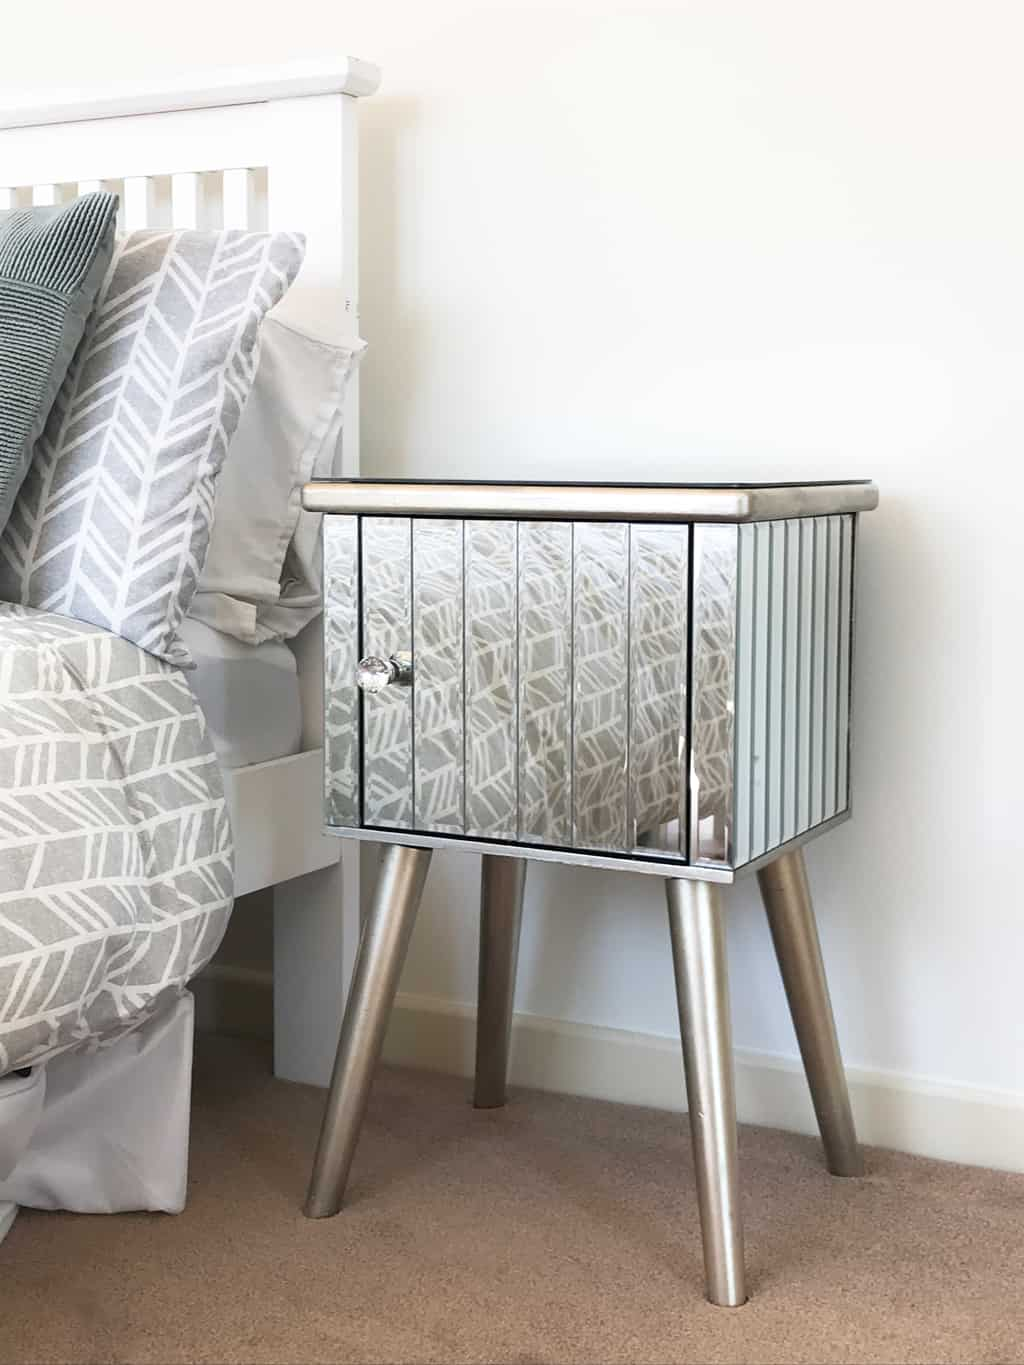 Mirrored Bedside Table Cabinet » Crystal knob